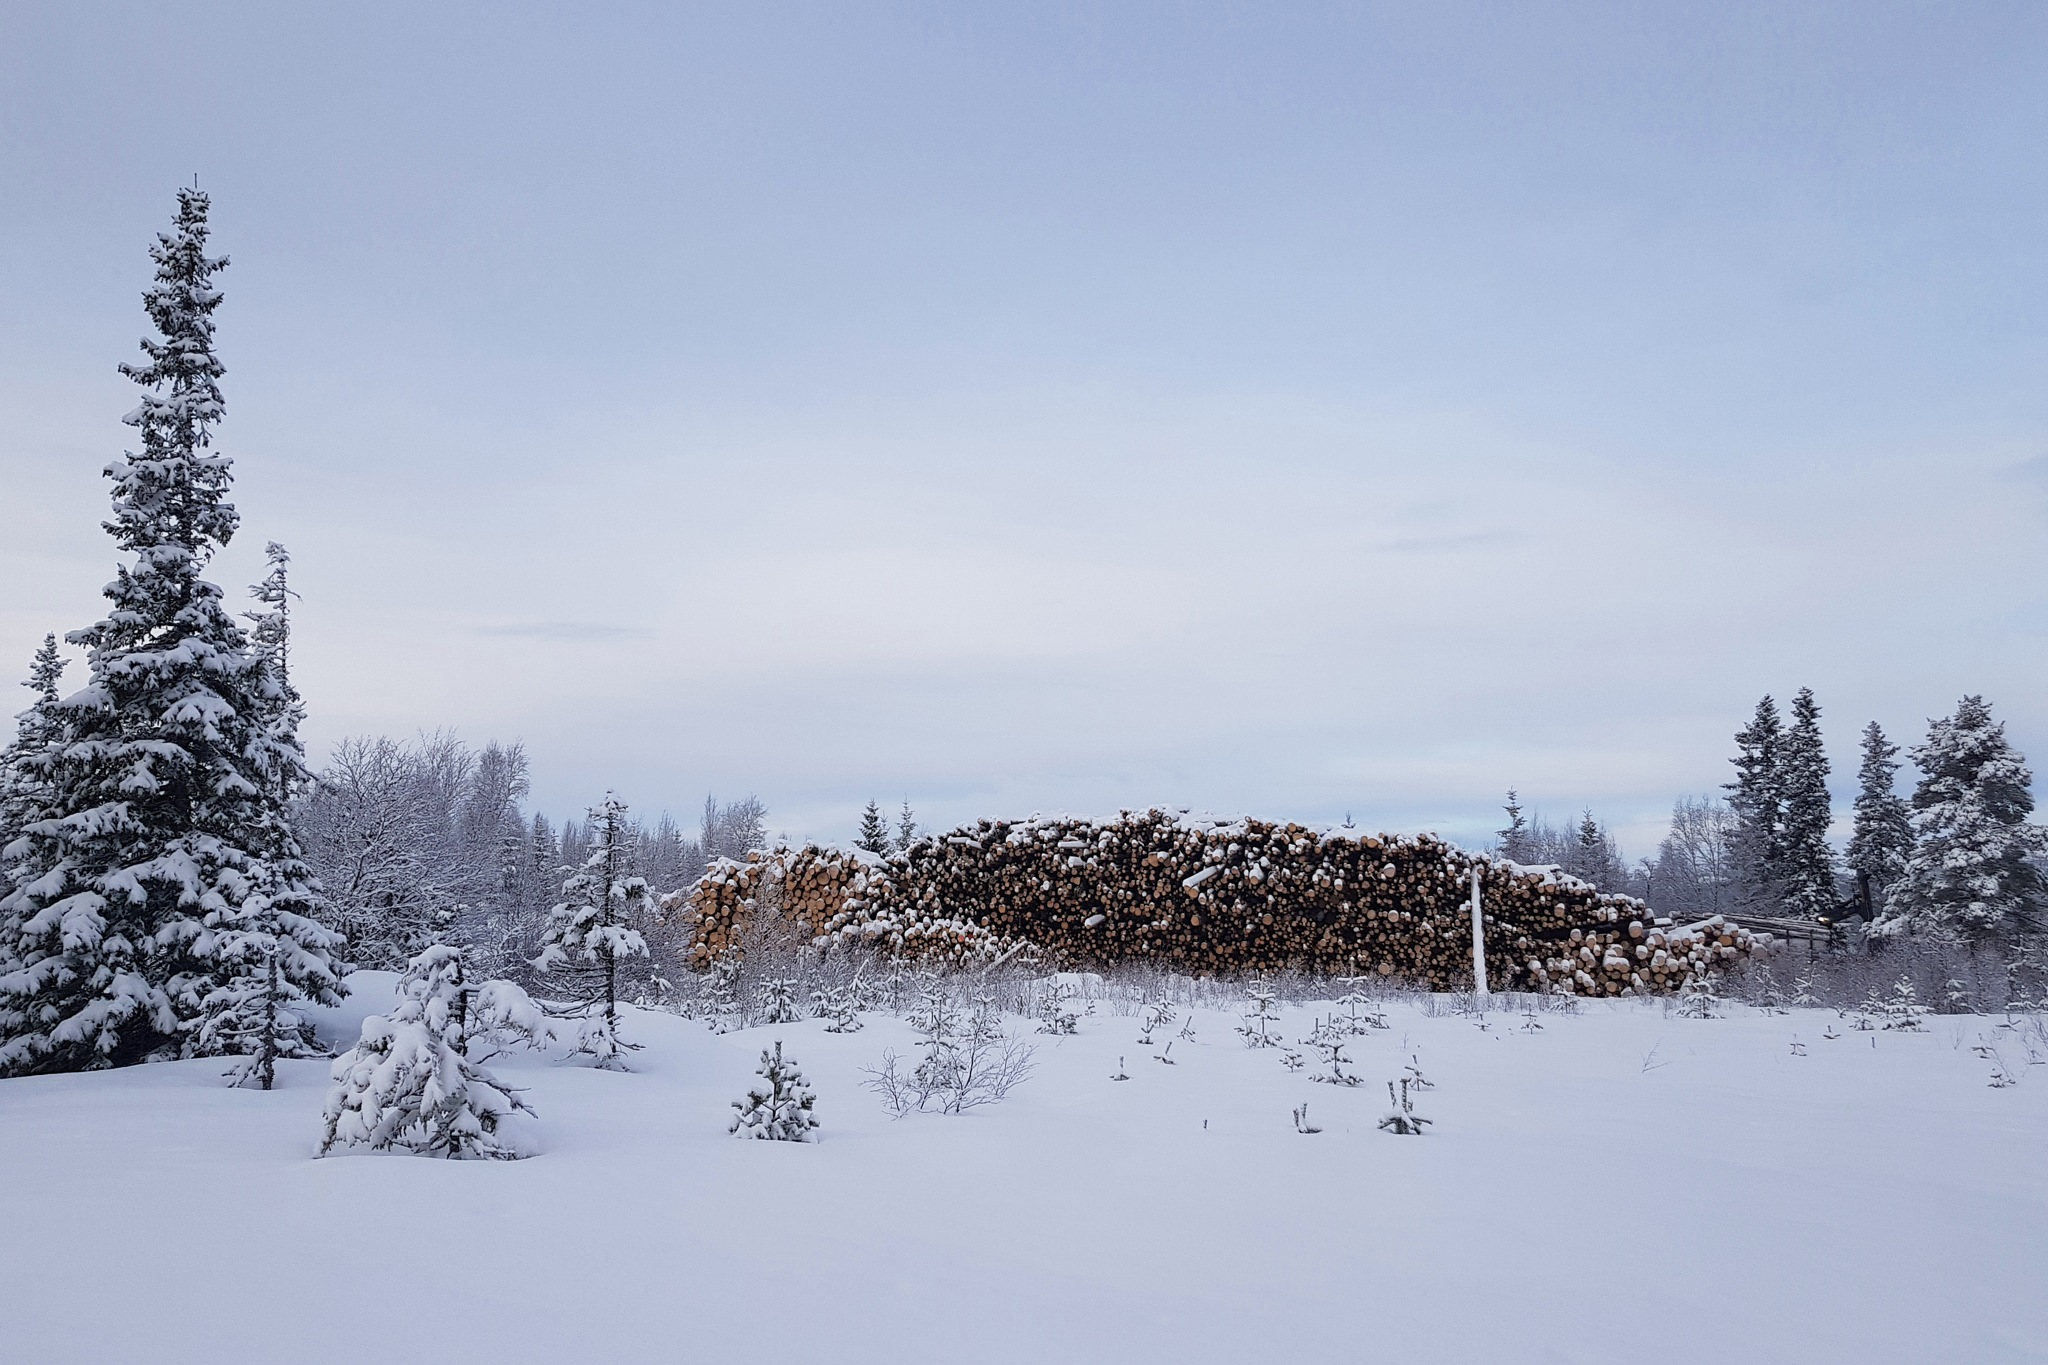 Timber & Nature by Jan Arvid Solem